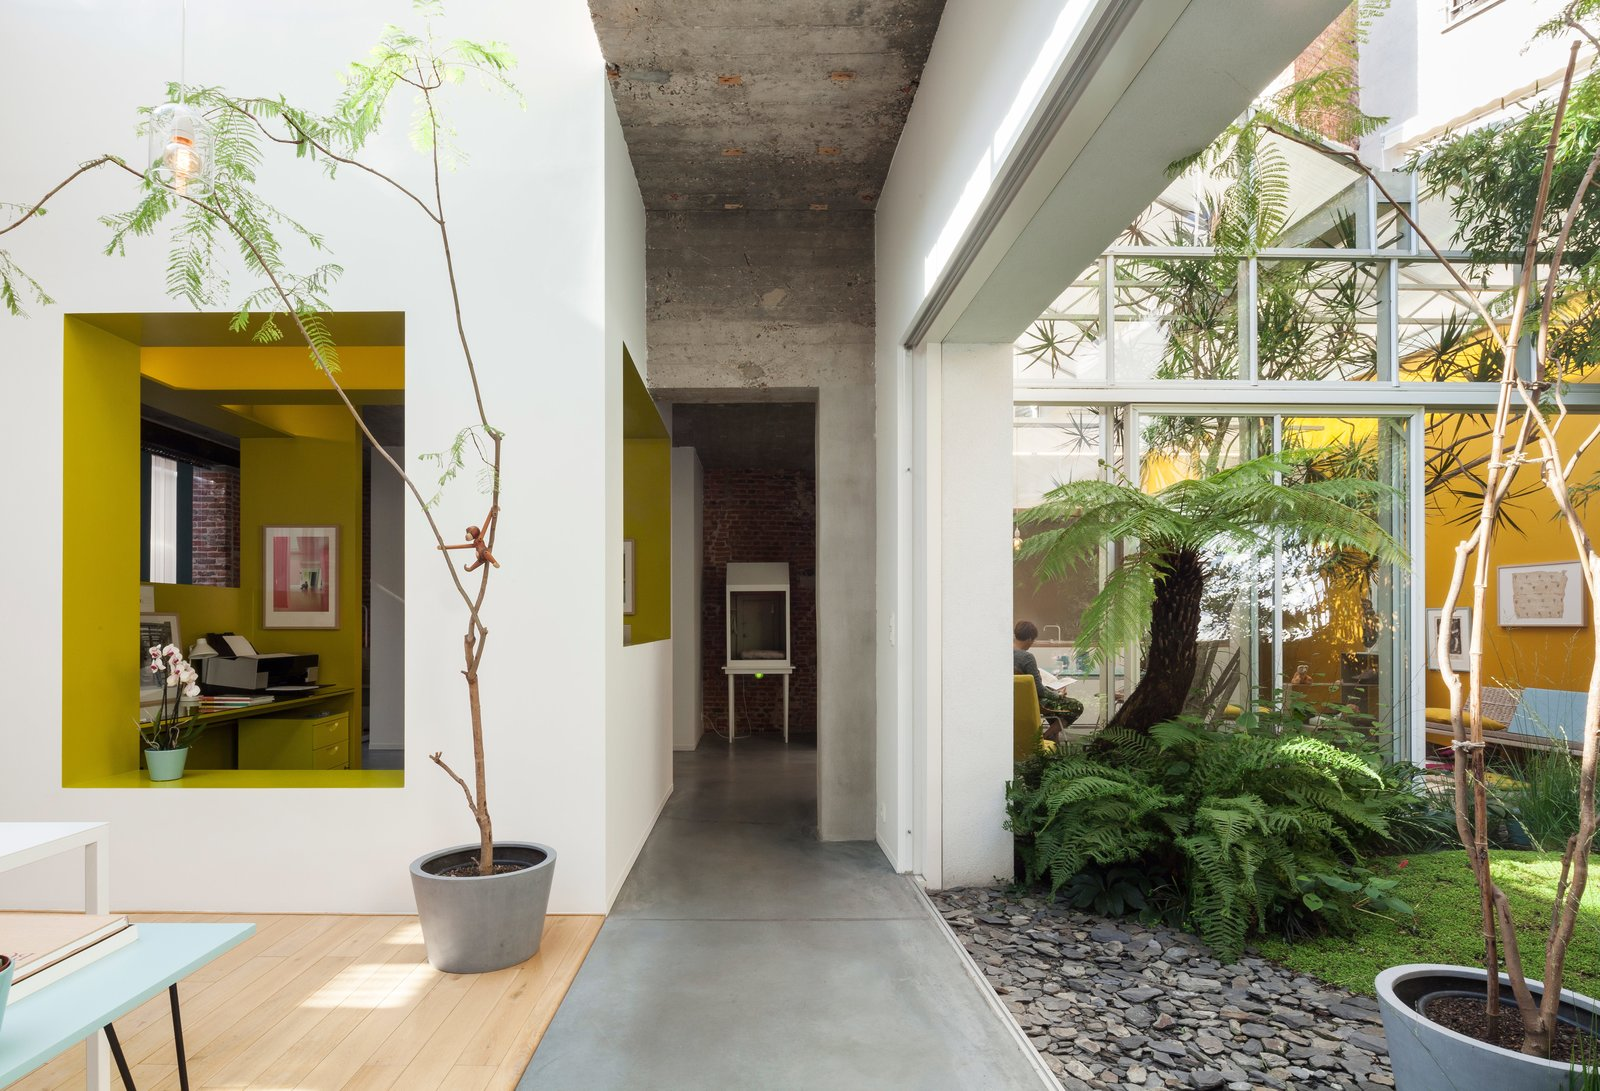 Modern Homes With Lush, Indoor Plants Collection Of 8 Photos By Aileen Kwun - Dwell-1848